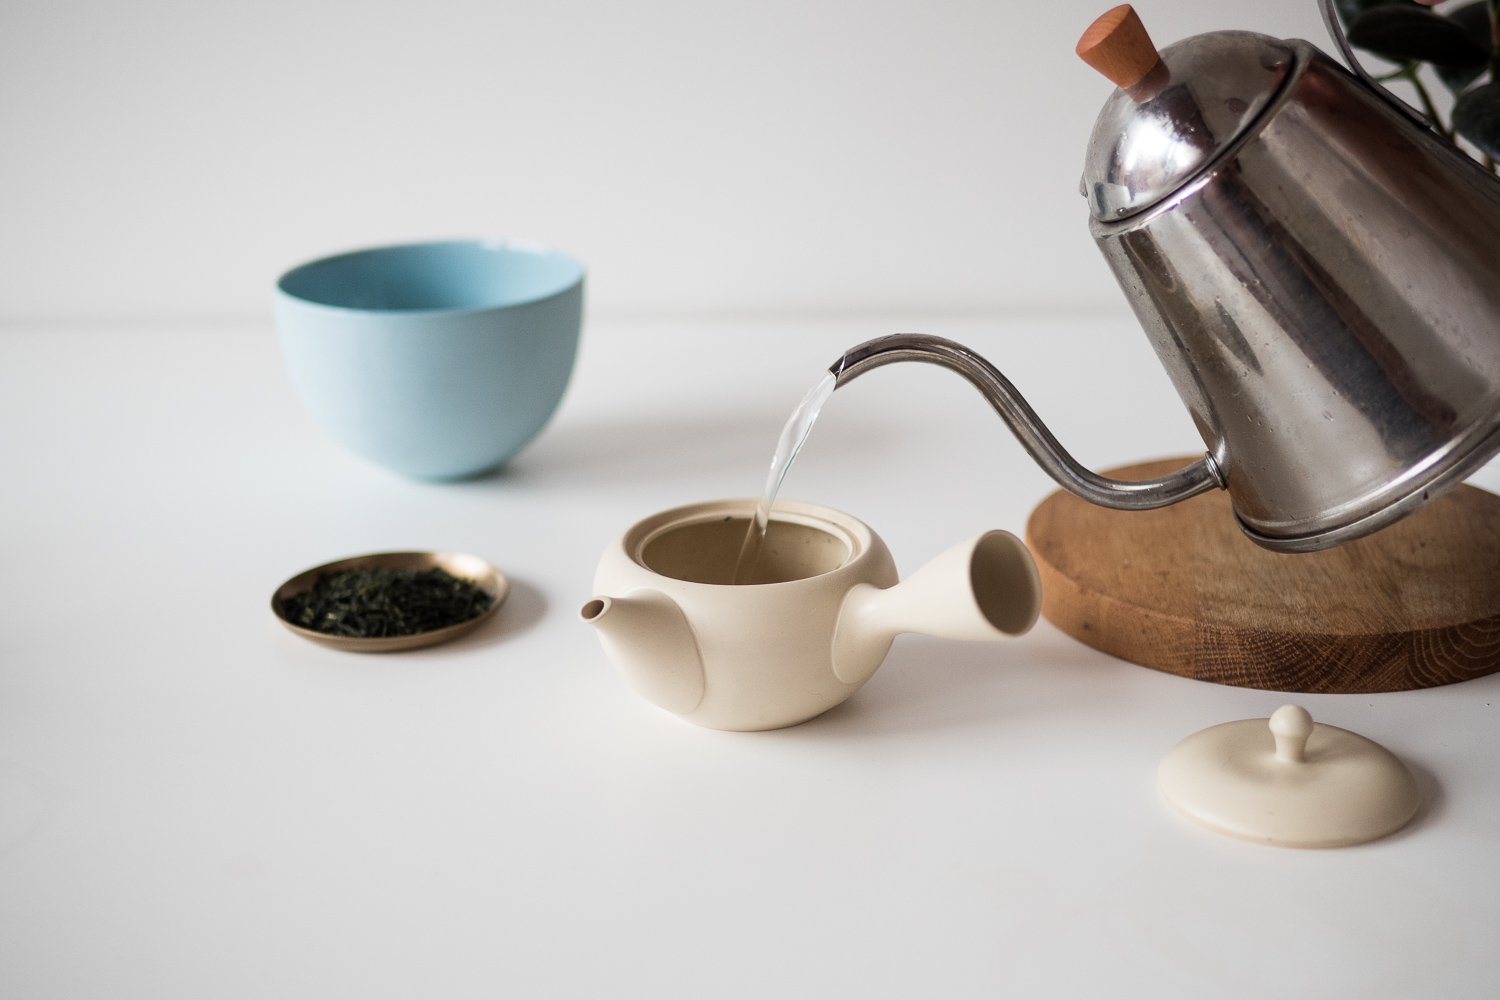 Brewing with kyusu - Read more →